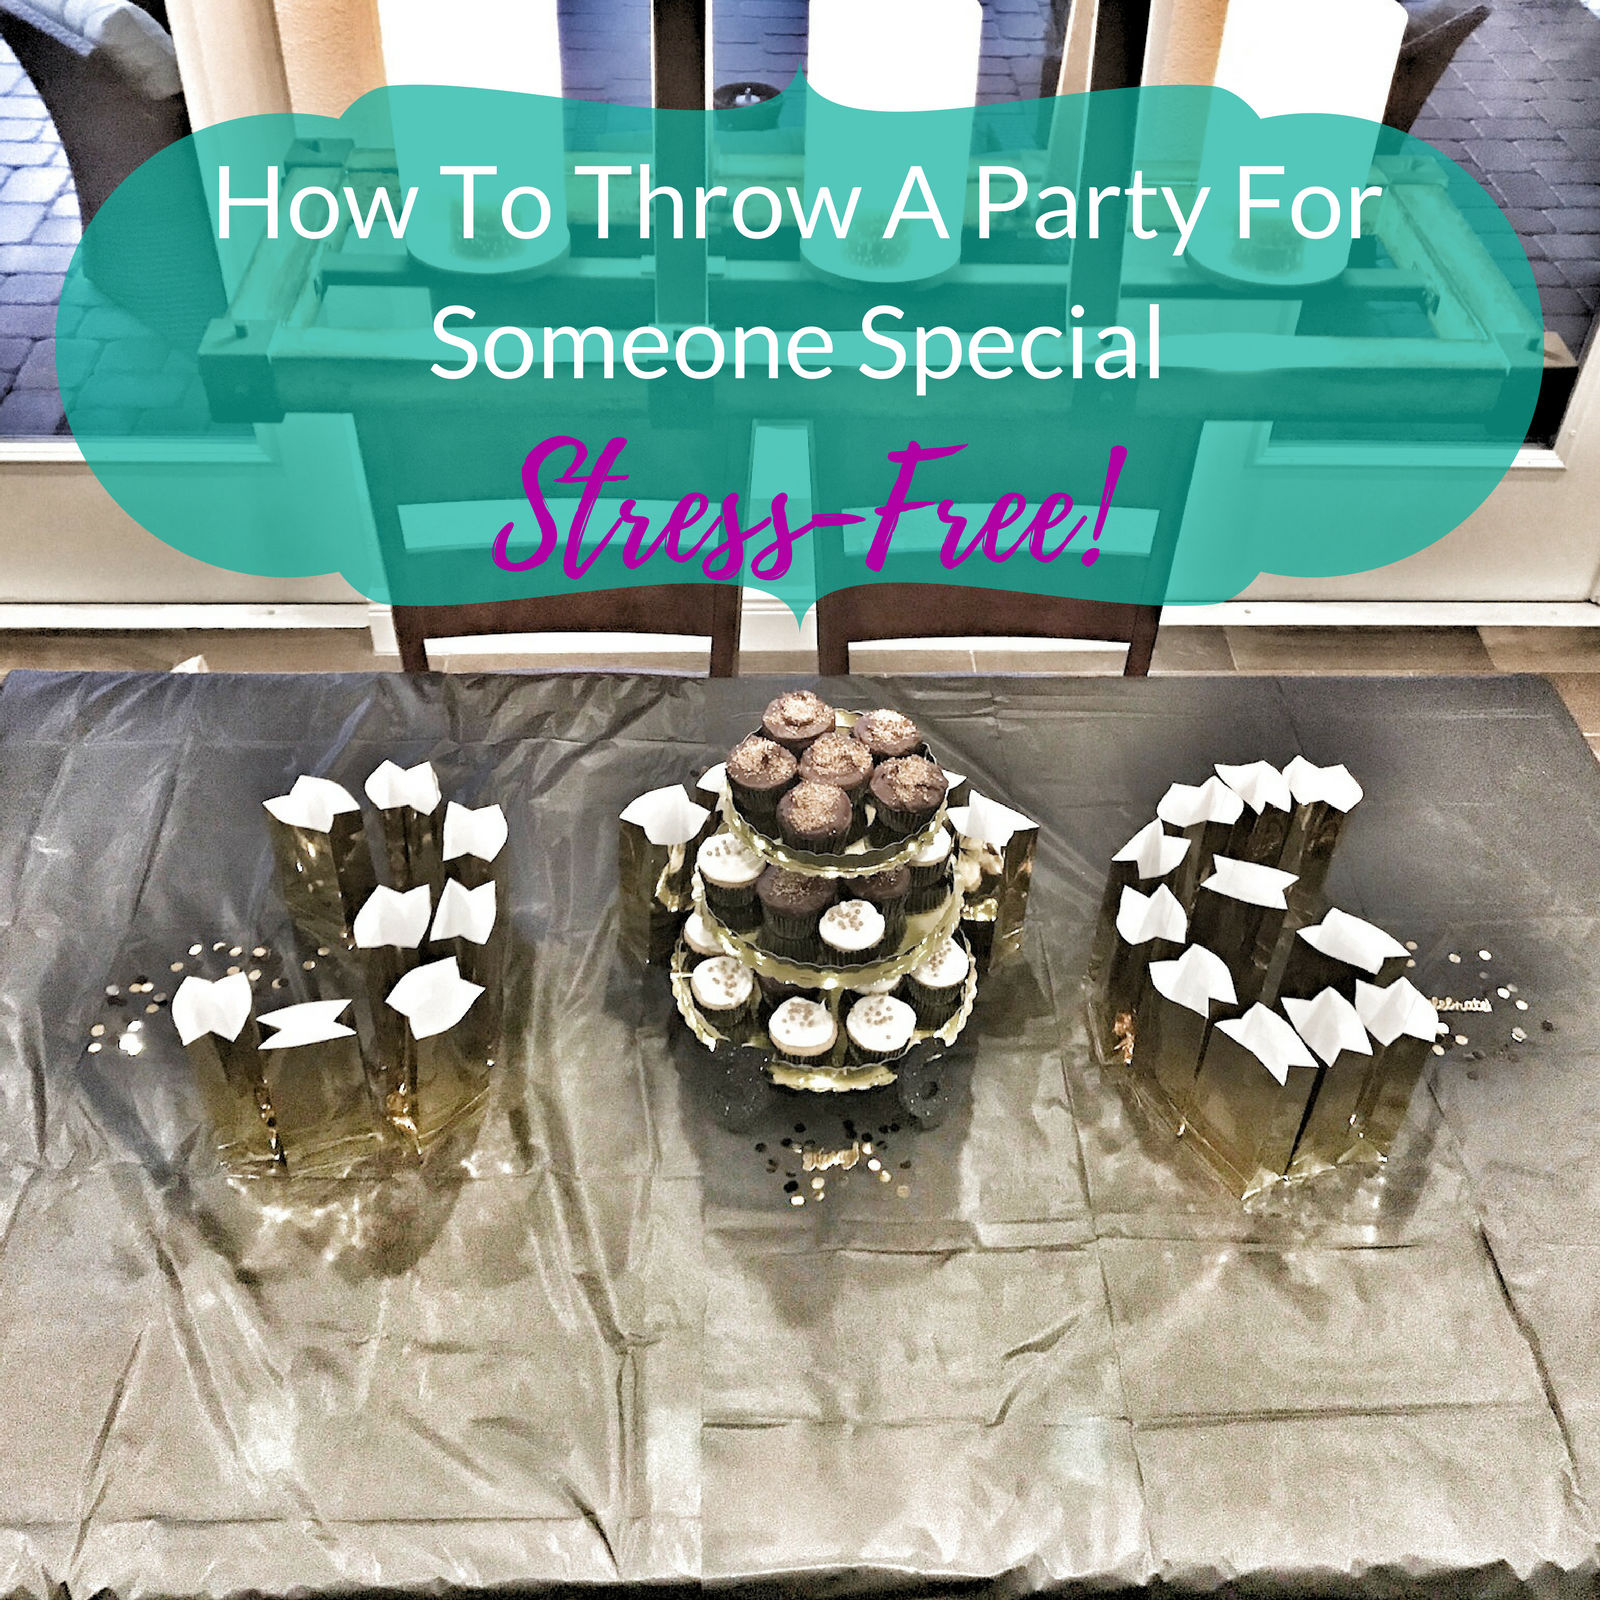 How To Throw A Stress-Free Party